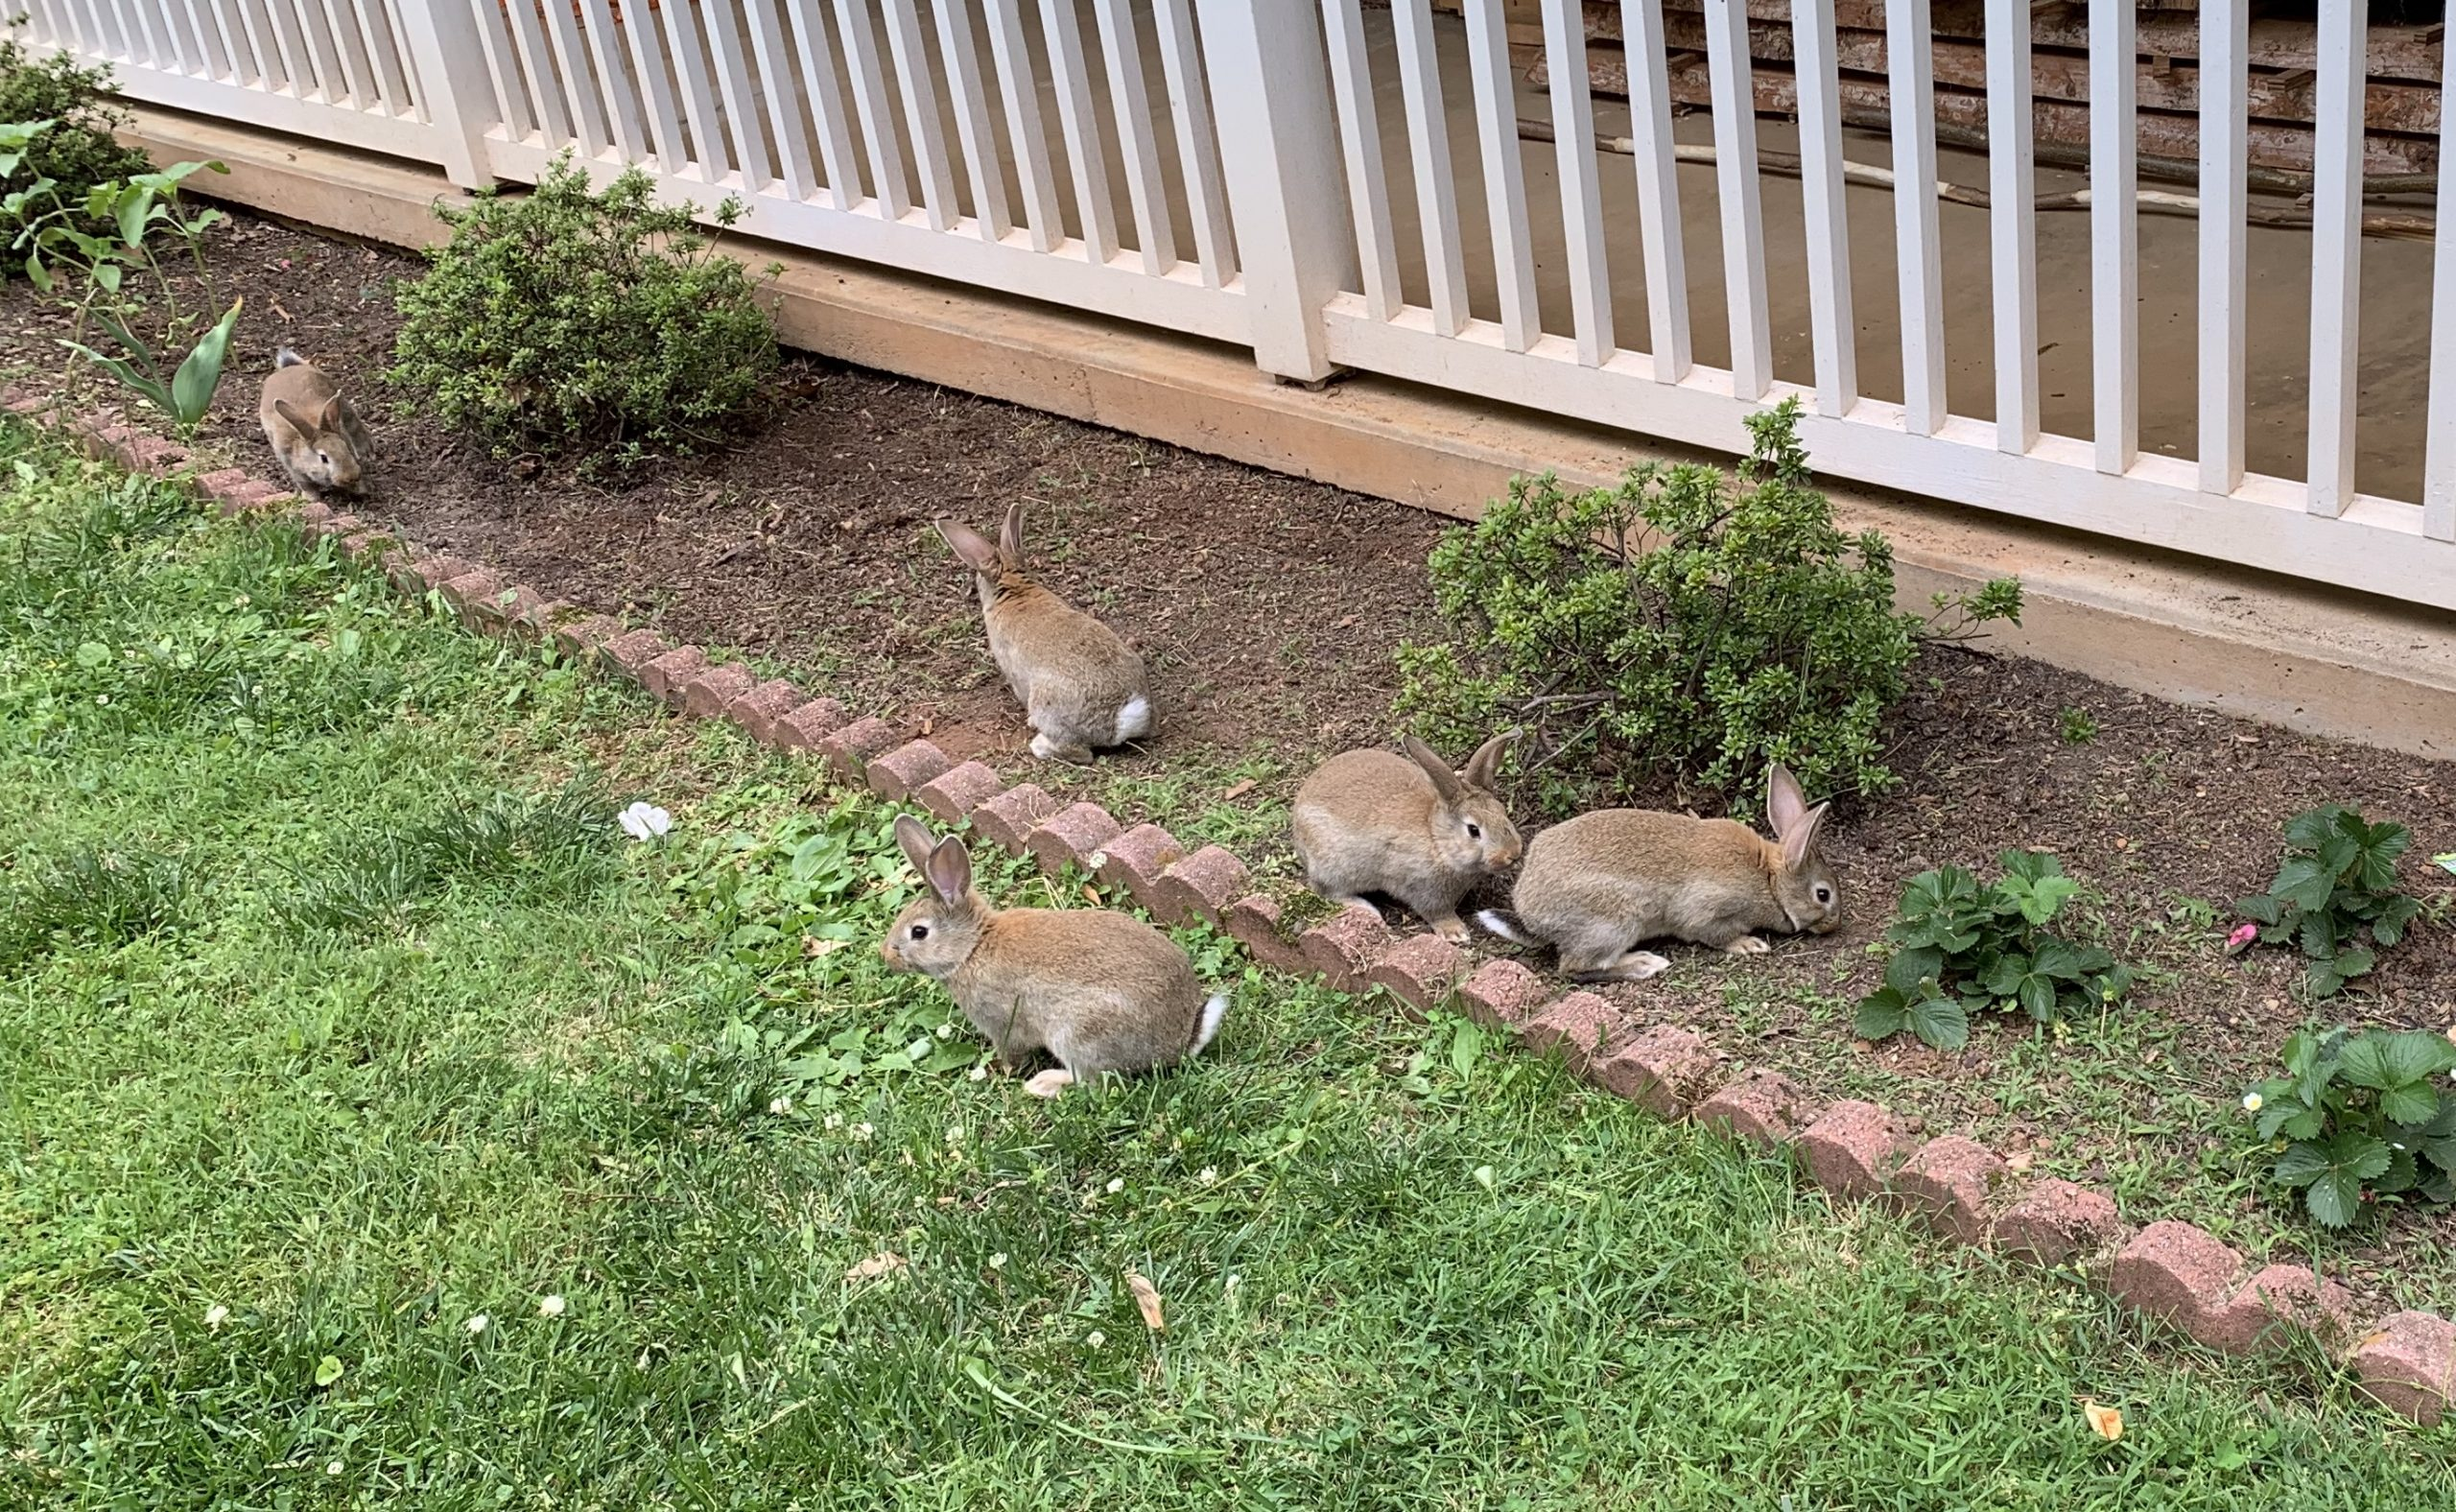 Four rabbits in a flowerbed